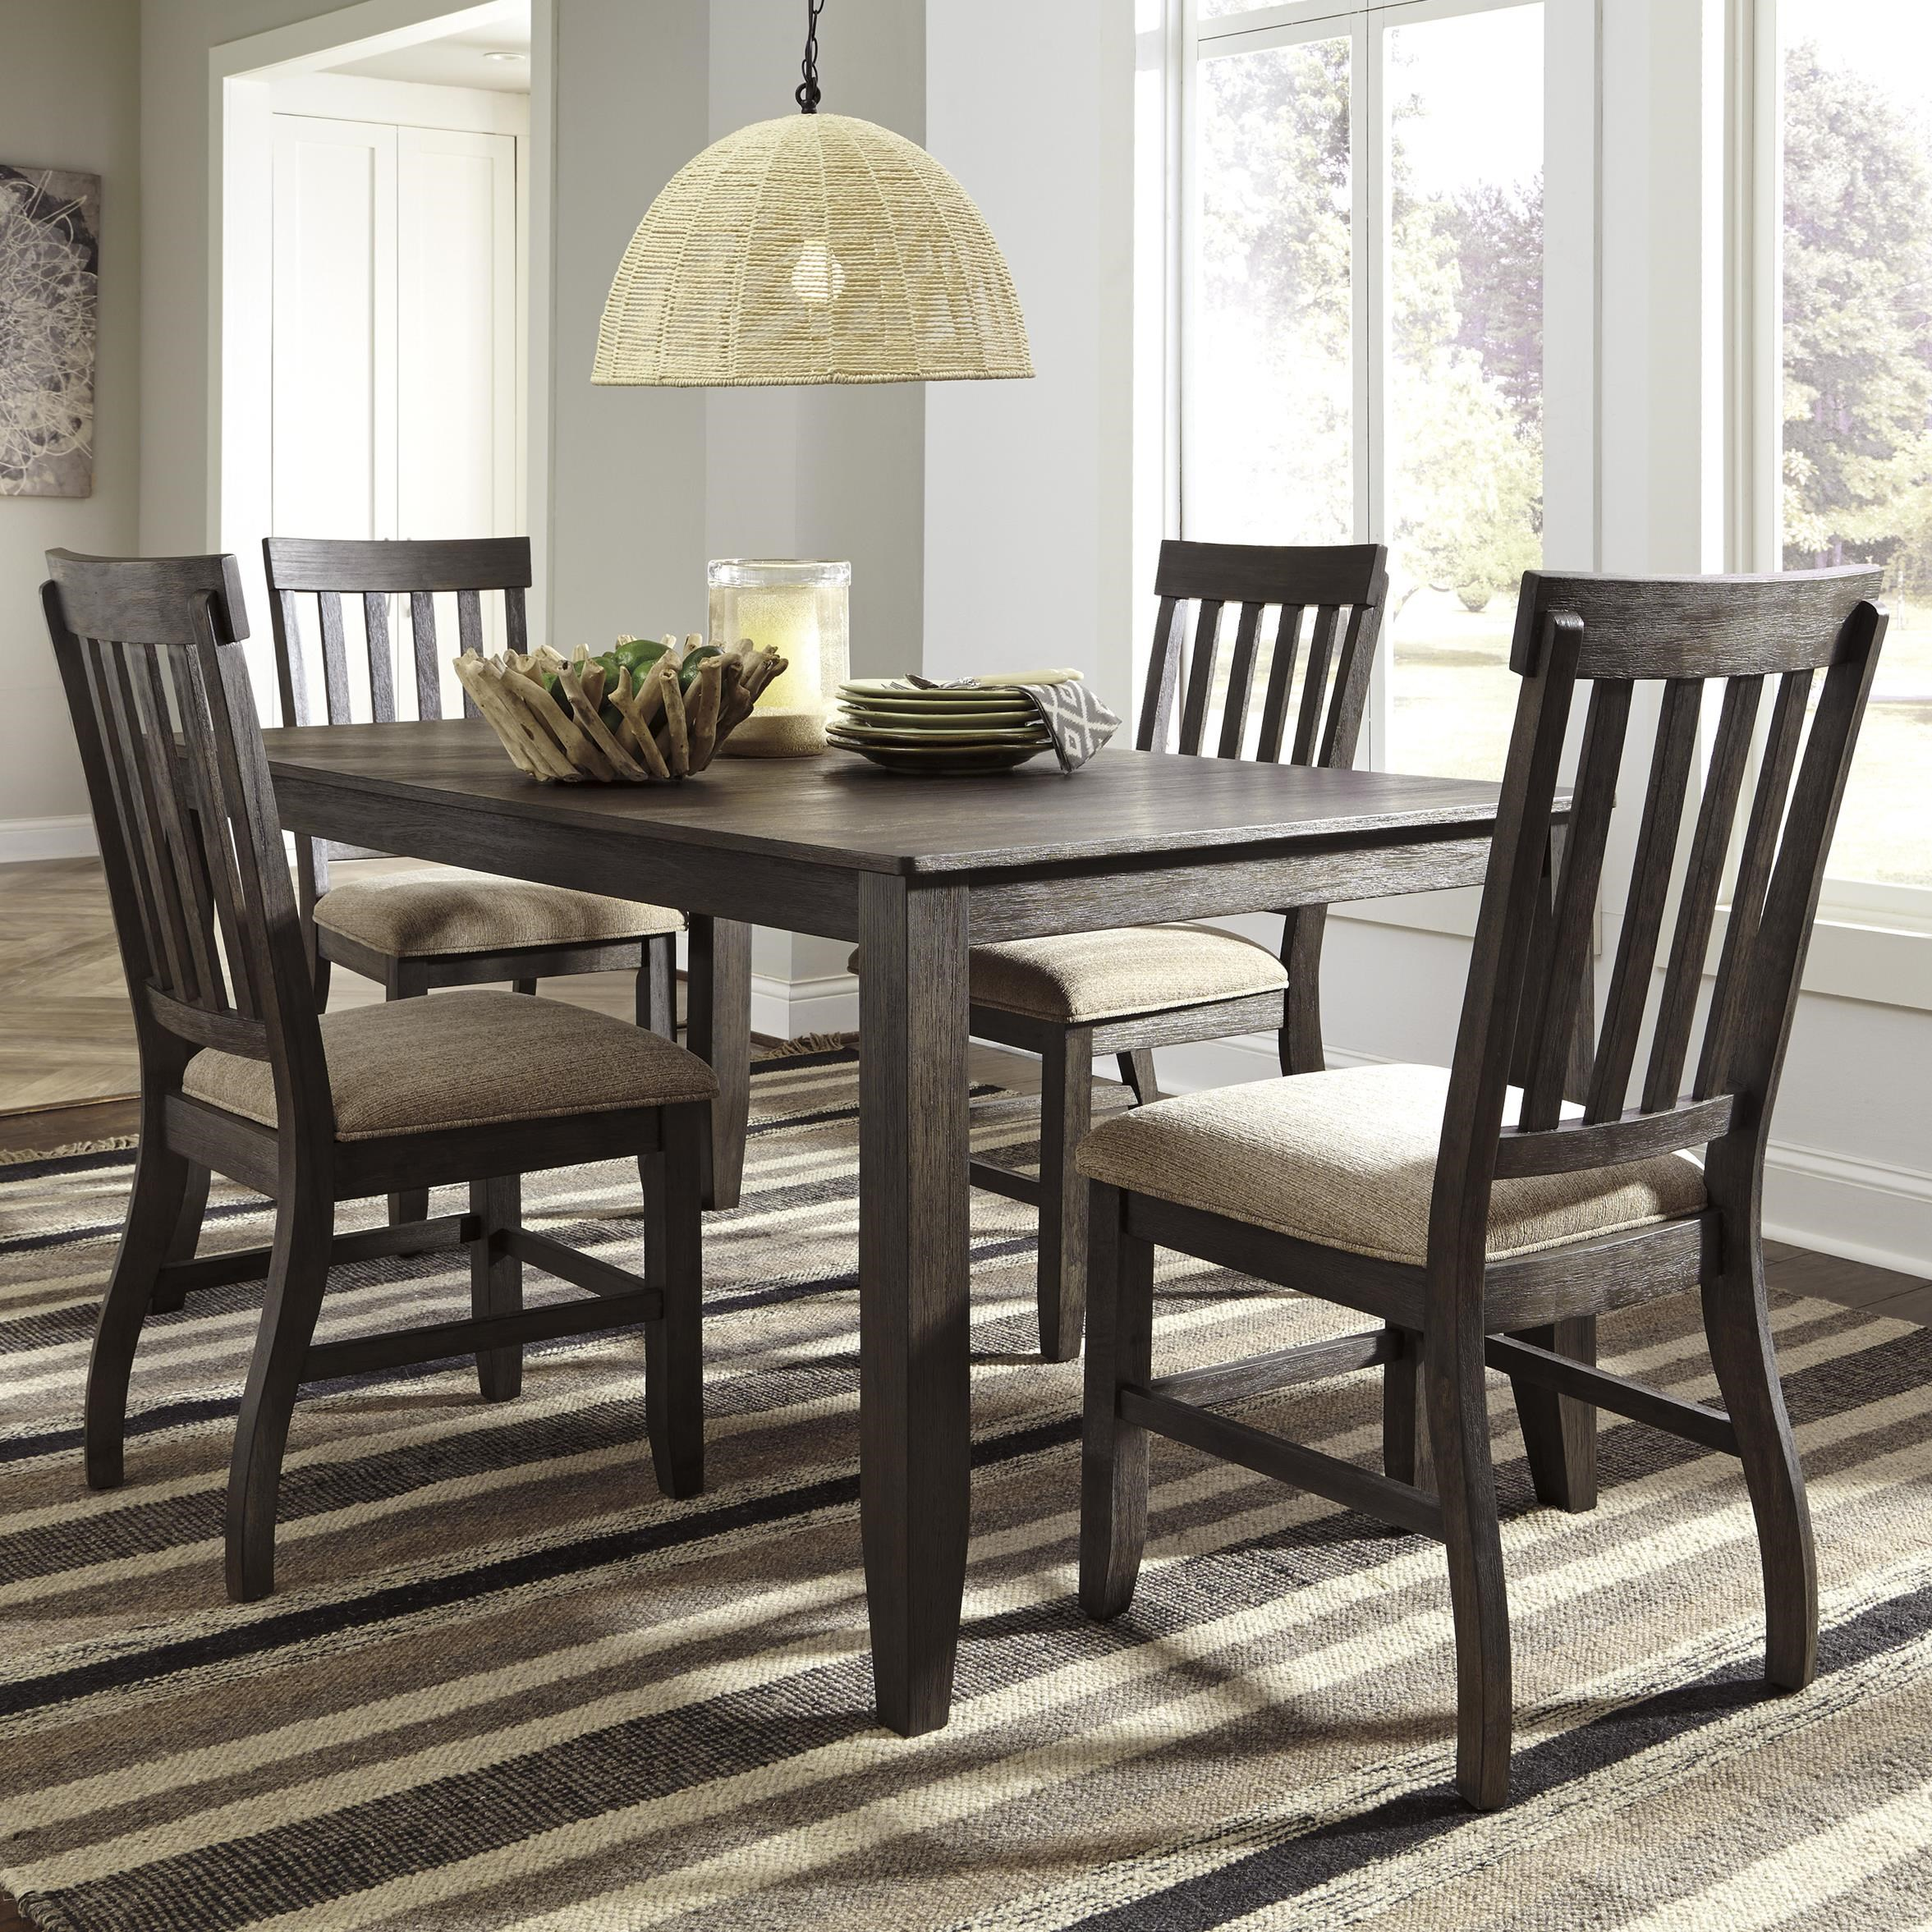 signature design by ashley dresbar 5piece rectangular dining table set